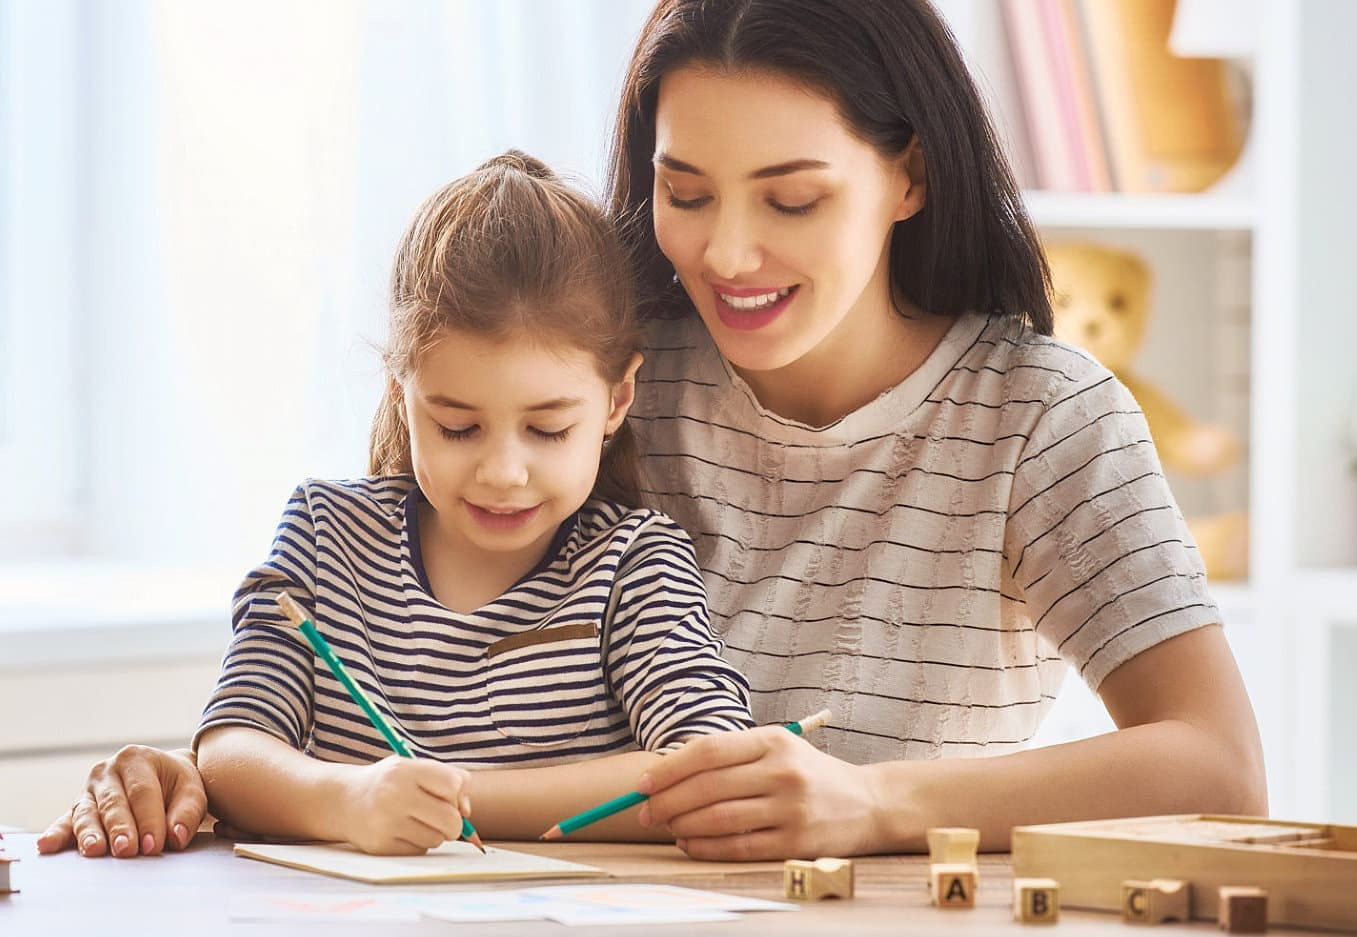 adult woman teaching a child